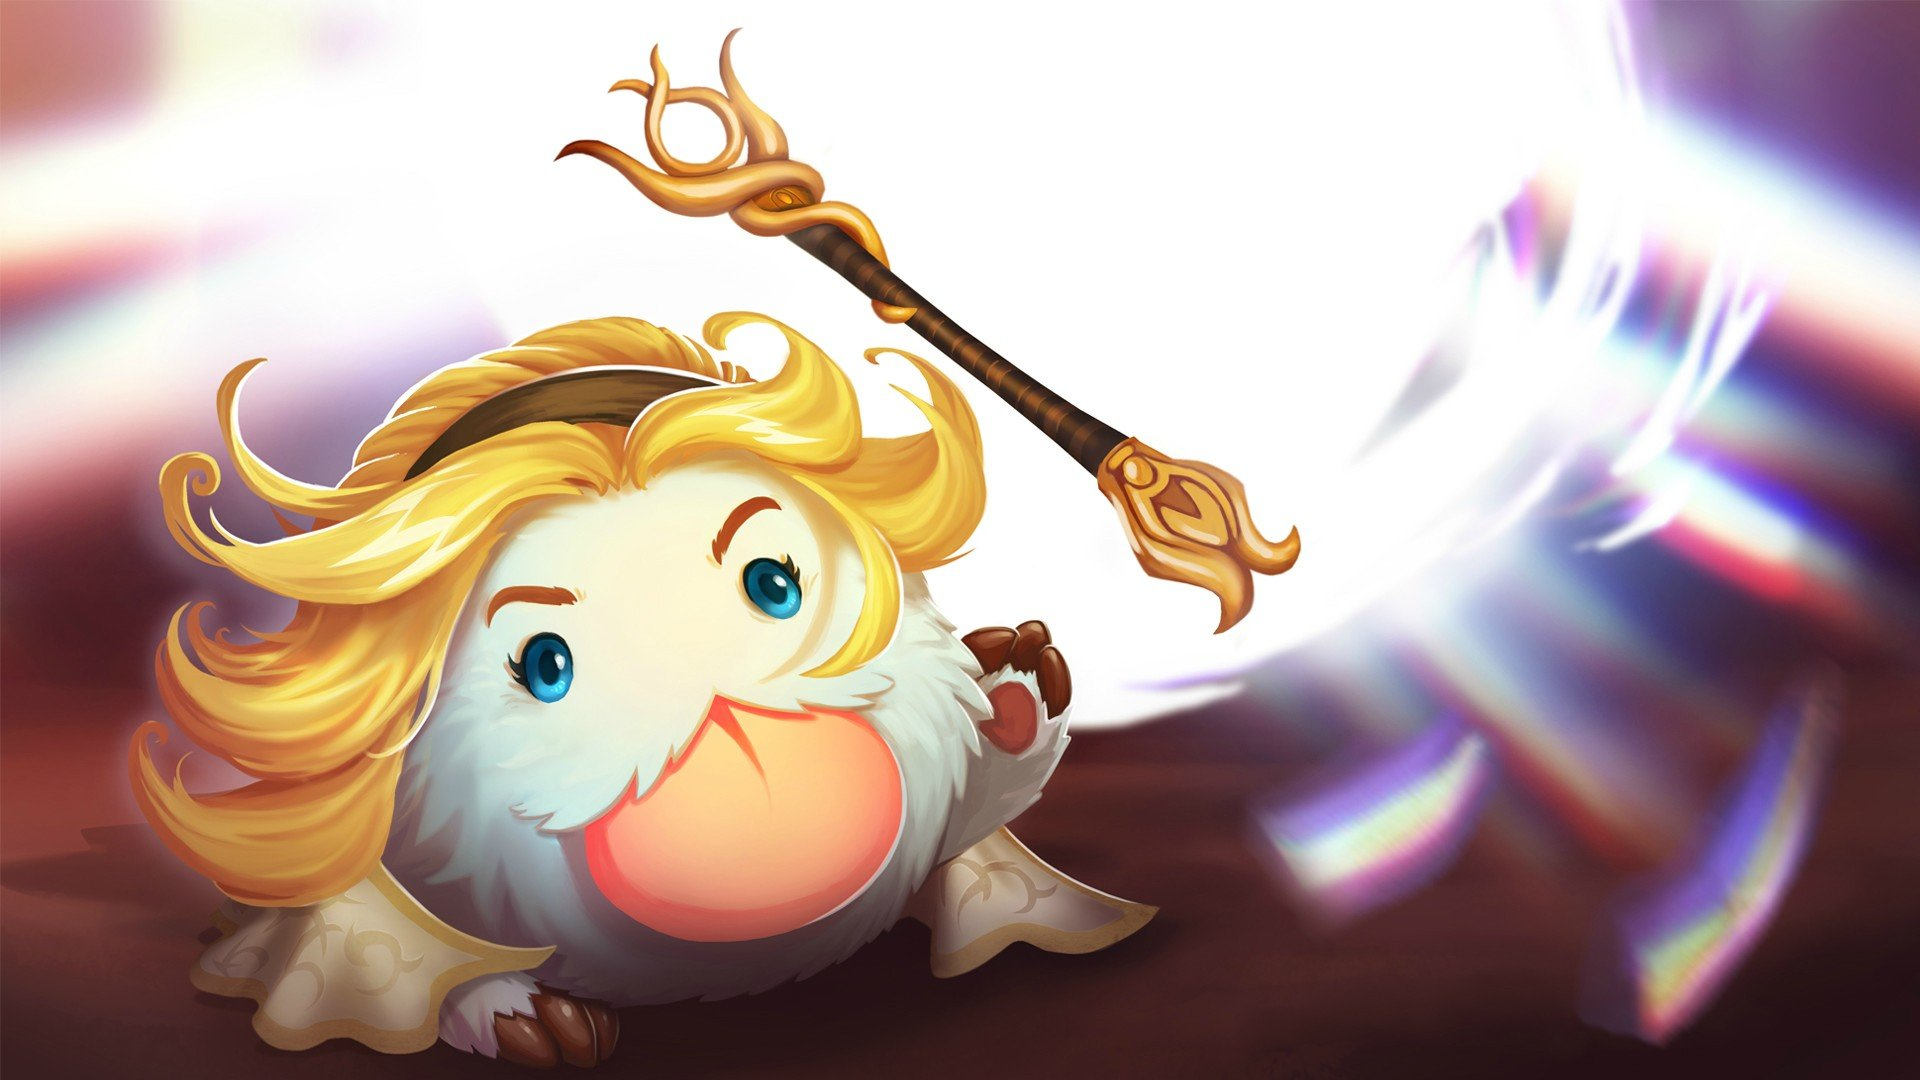 Lux League Of Legends Wallpapers 1920x1080 Full Hd 1080p